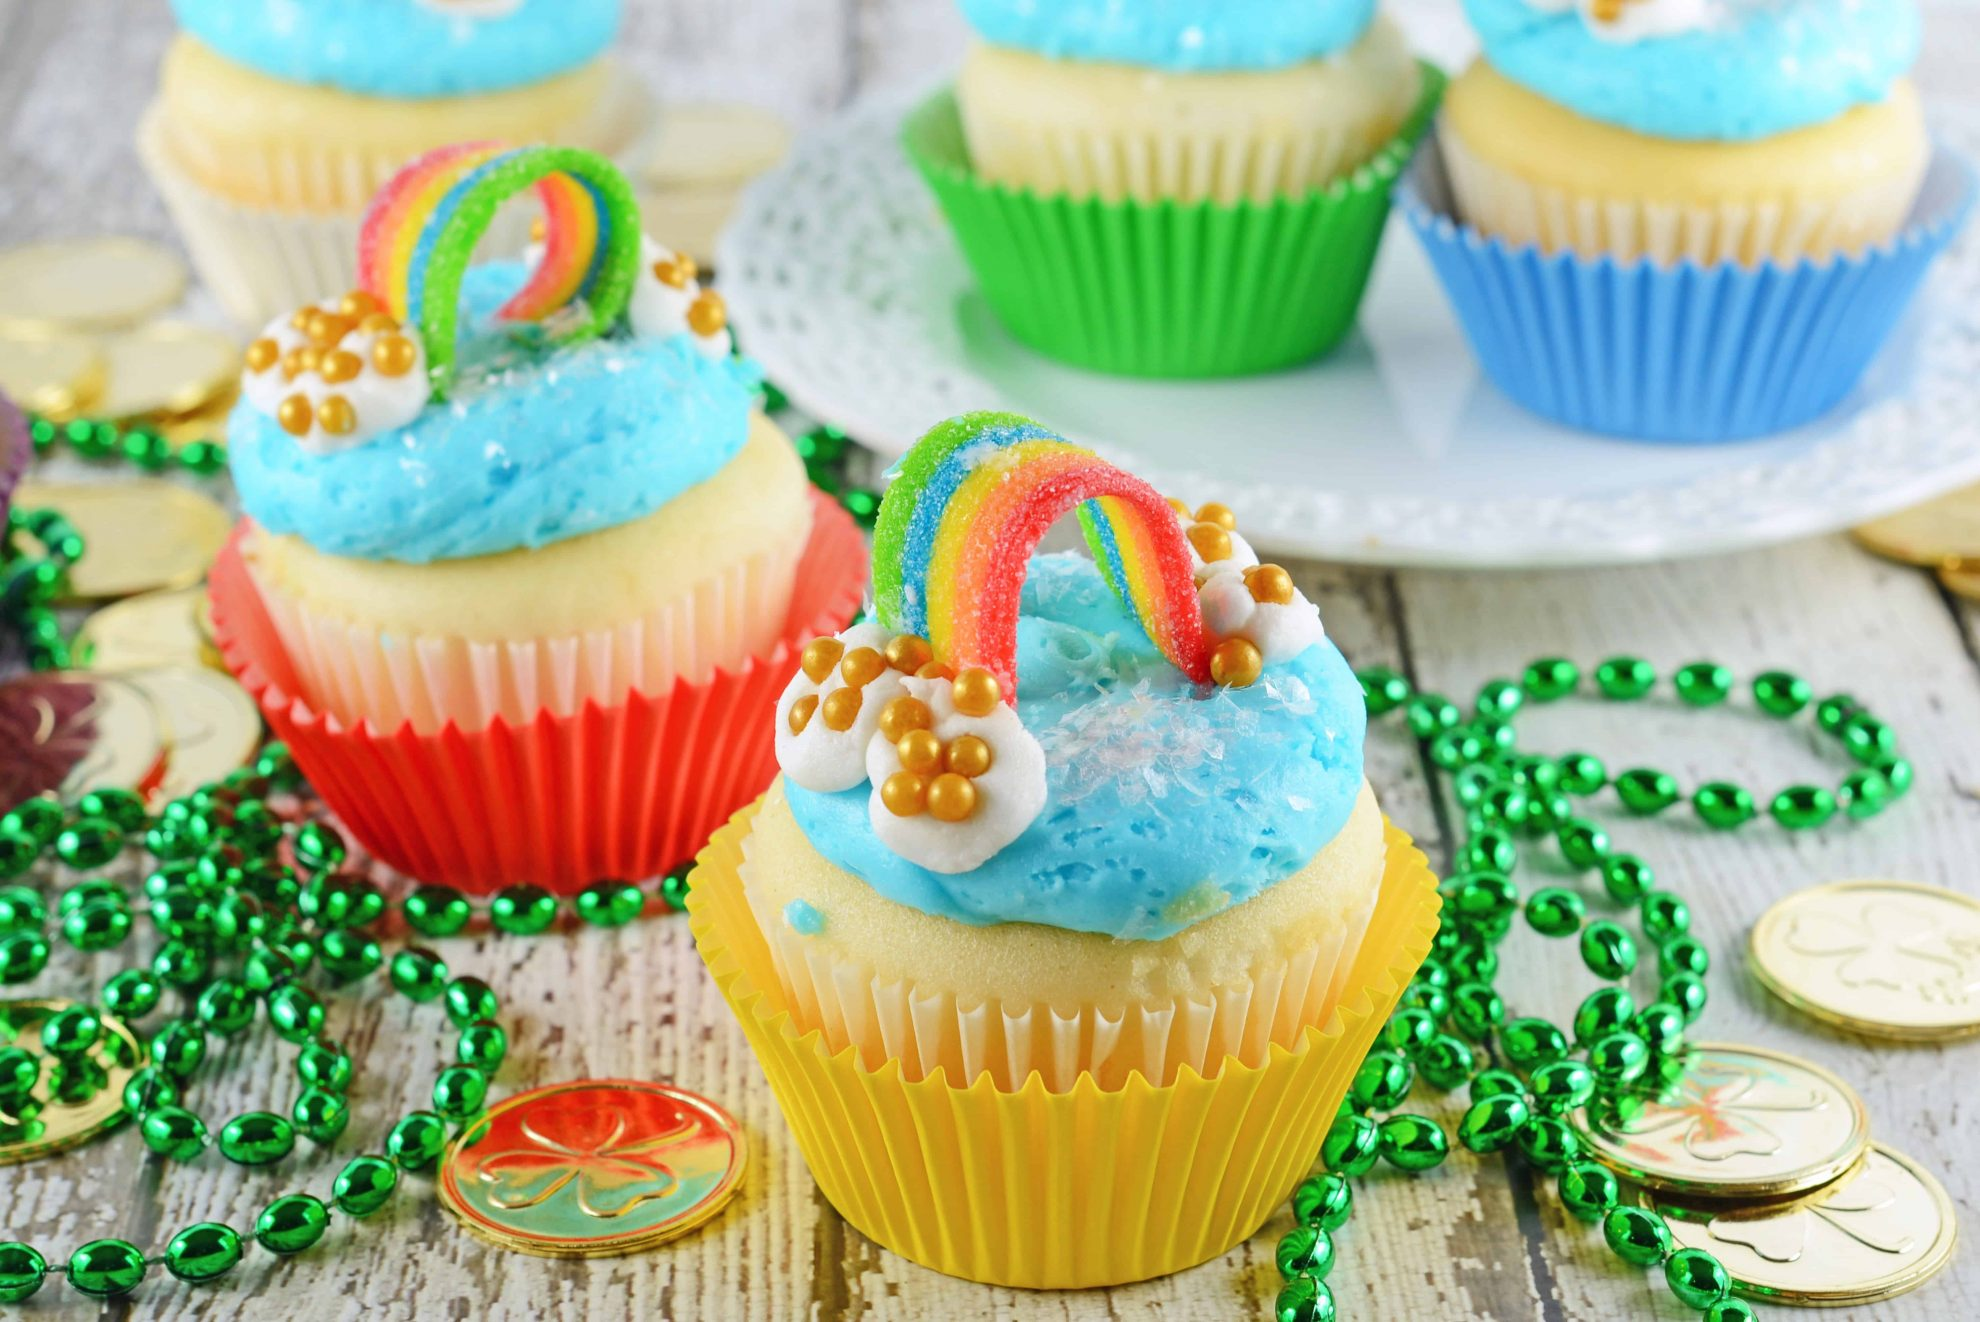 Rainbow Cupcakes are super easy and cute. The perfect cupcake for St. Patrick's Day, children's birthday parties or any random day of the week! #rainbowcupcakes #stapatricksdaydesserts www.savoryexperiments.com